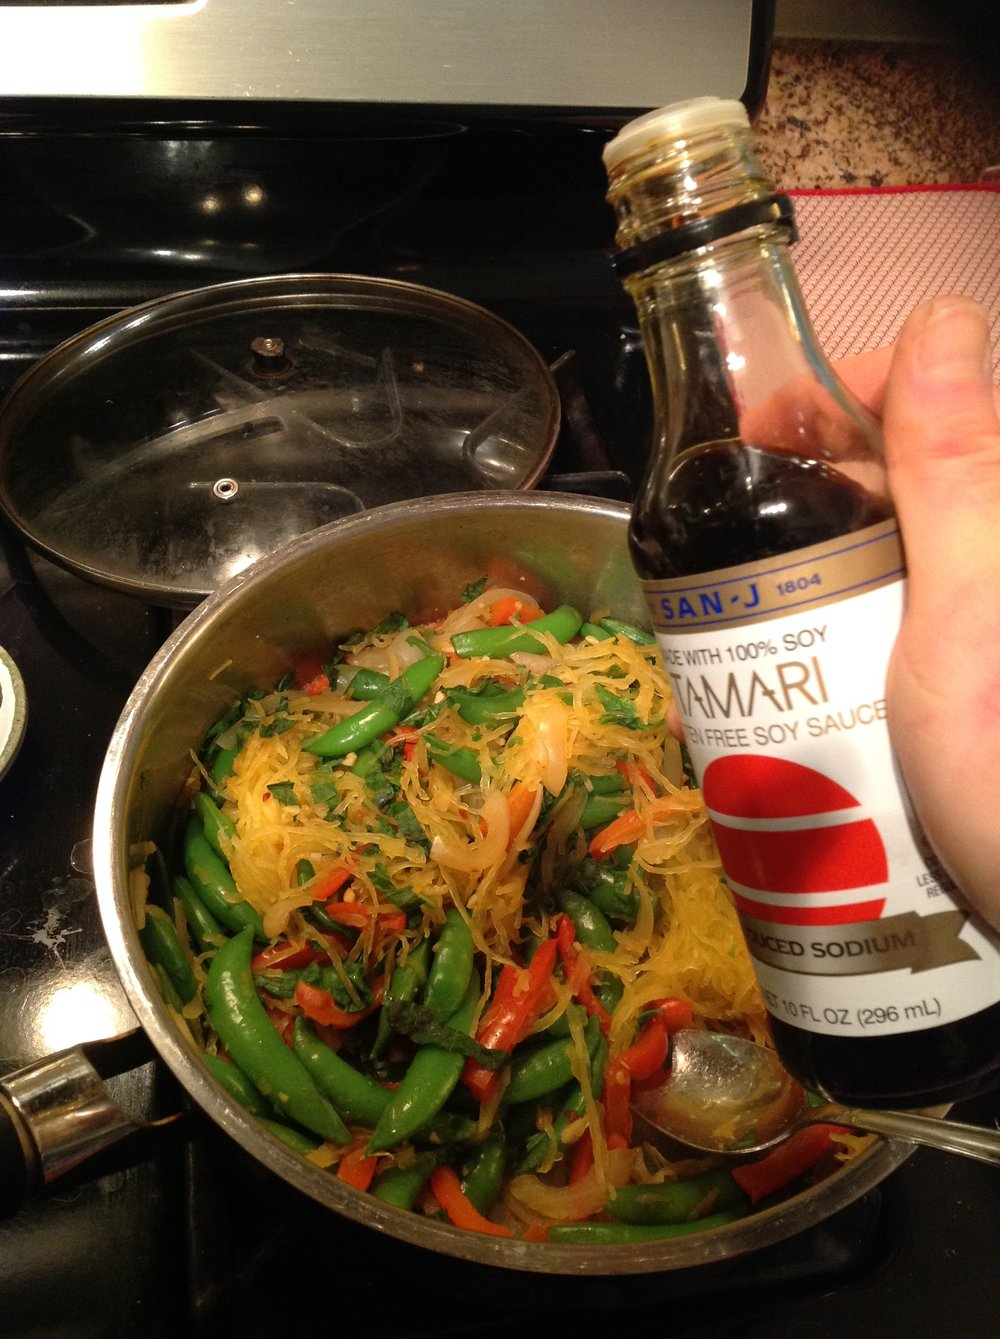 Chef's Gluten-Free Tip:  For a truly gluten-free recipe, be sure to use tamari instead of soy sauce.  Tamari is made without wheat, making it a safe option for Asian Celiac  recipes